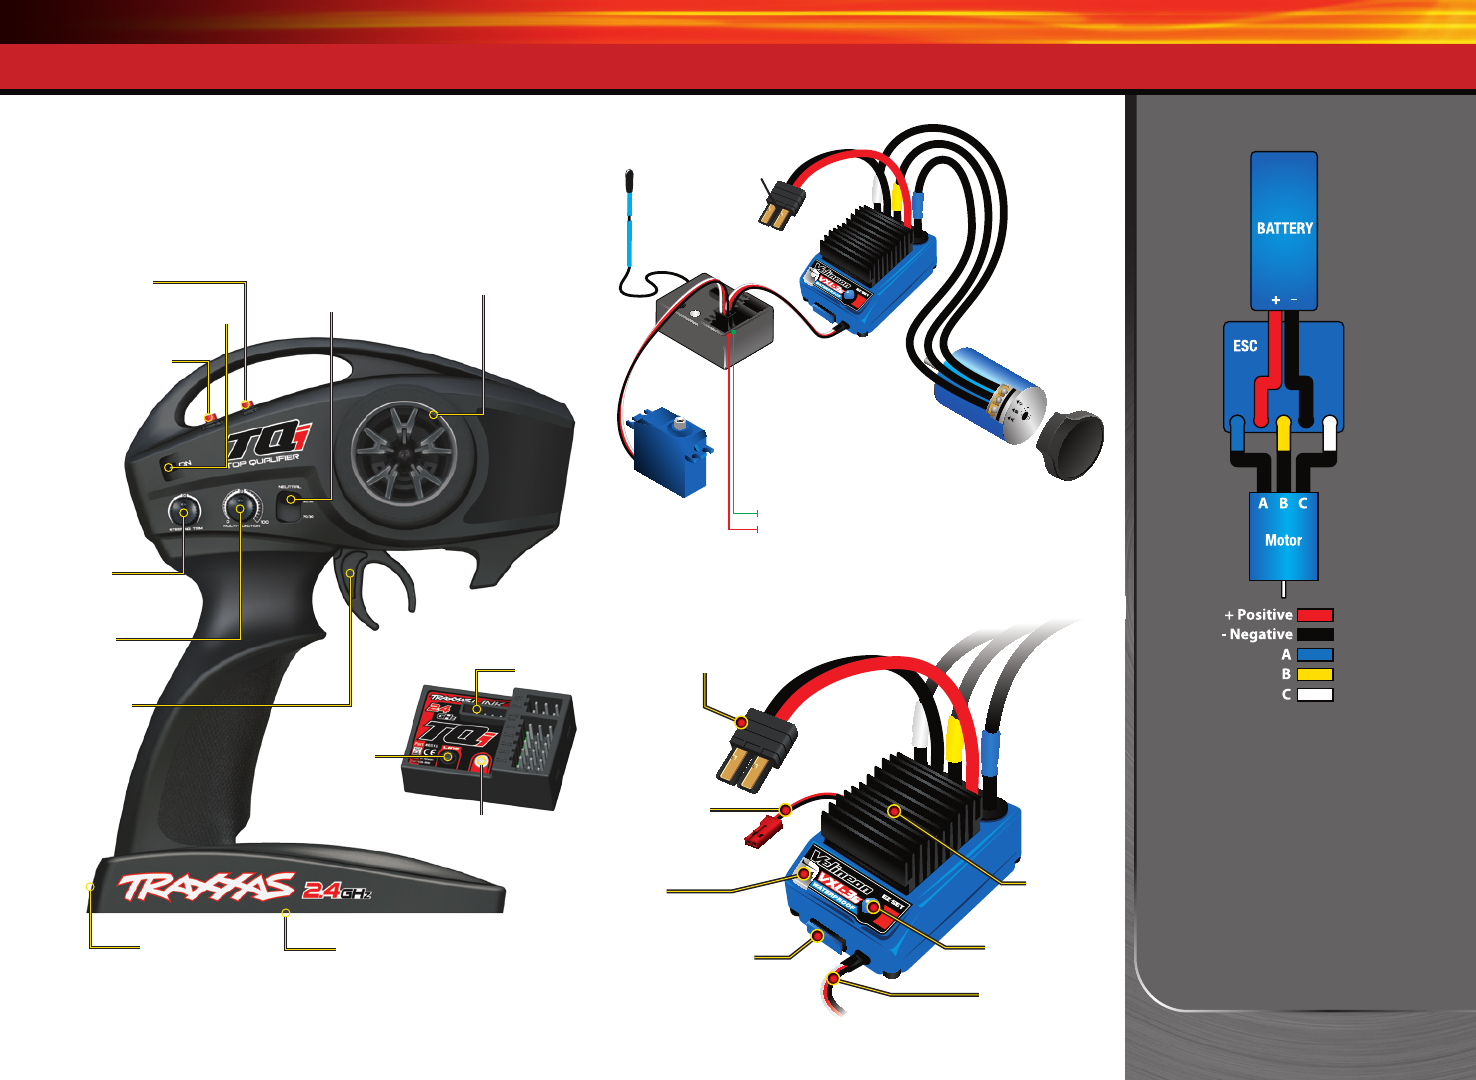 42d10b11 3234 4659 bbbf a55e537cad96 bgd page 13 of traxxas universal remote model 3707 3707l user guide traxxas tq receiver wiring diagram at alyssarenee.co